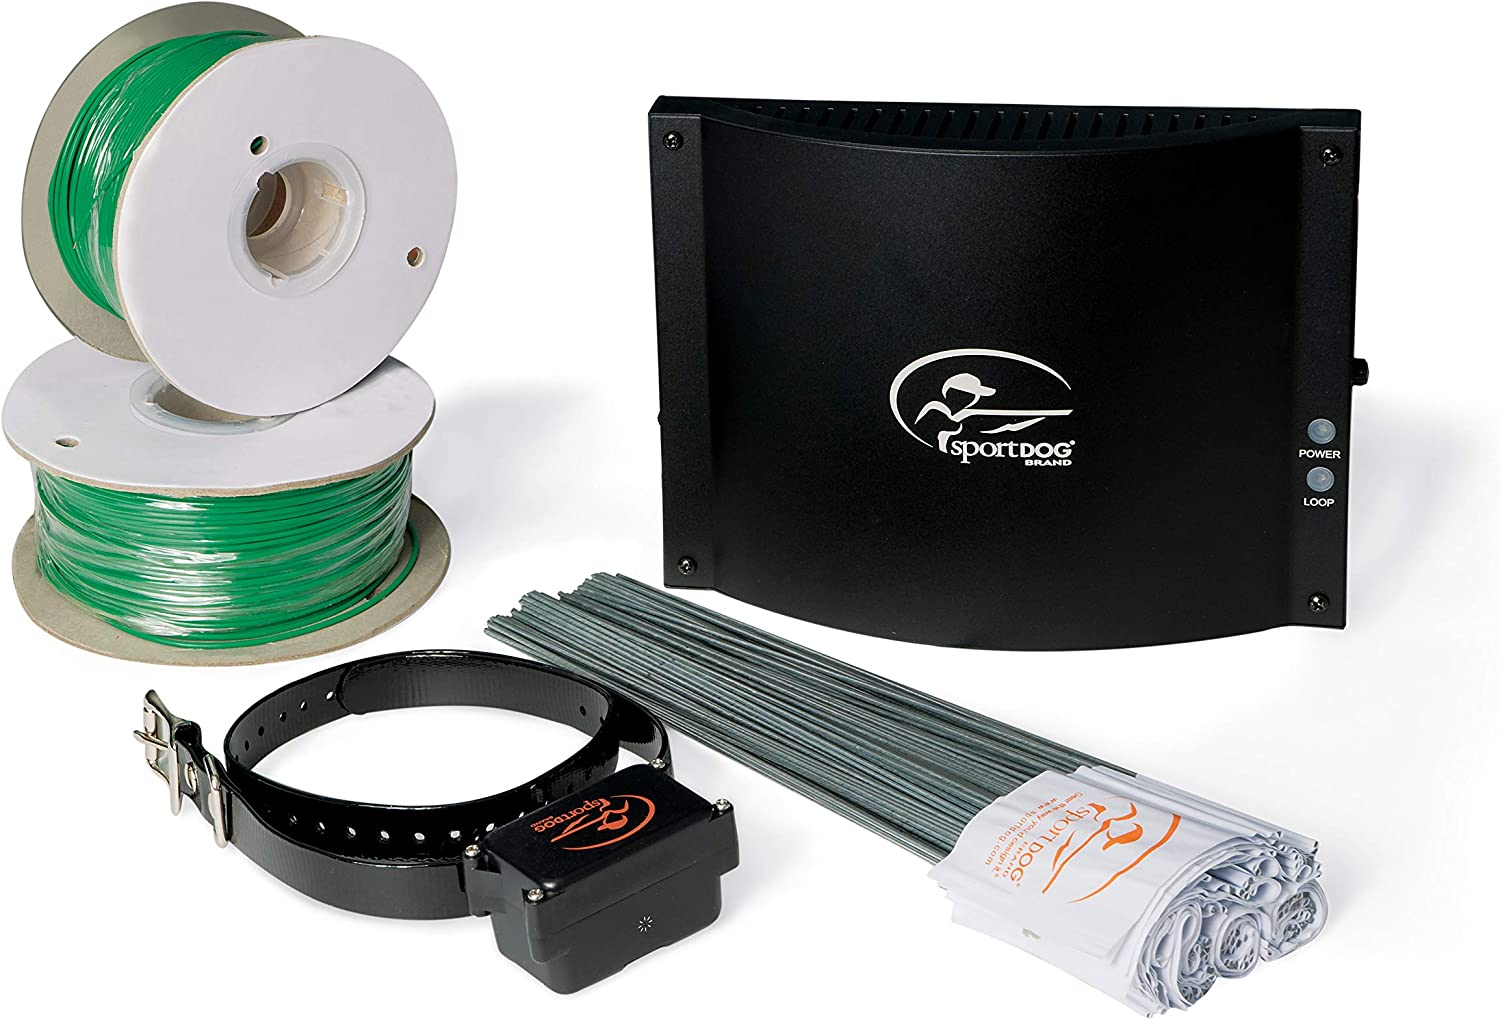 SportDOG Brand In-Ground Fence Systems from the Parent Company of INVISIBLE FENCE Brand – Underground Wire Electric Fence – Tone, Vibration, Shock – 100 Acre Capability – Remote Trainer Option